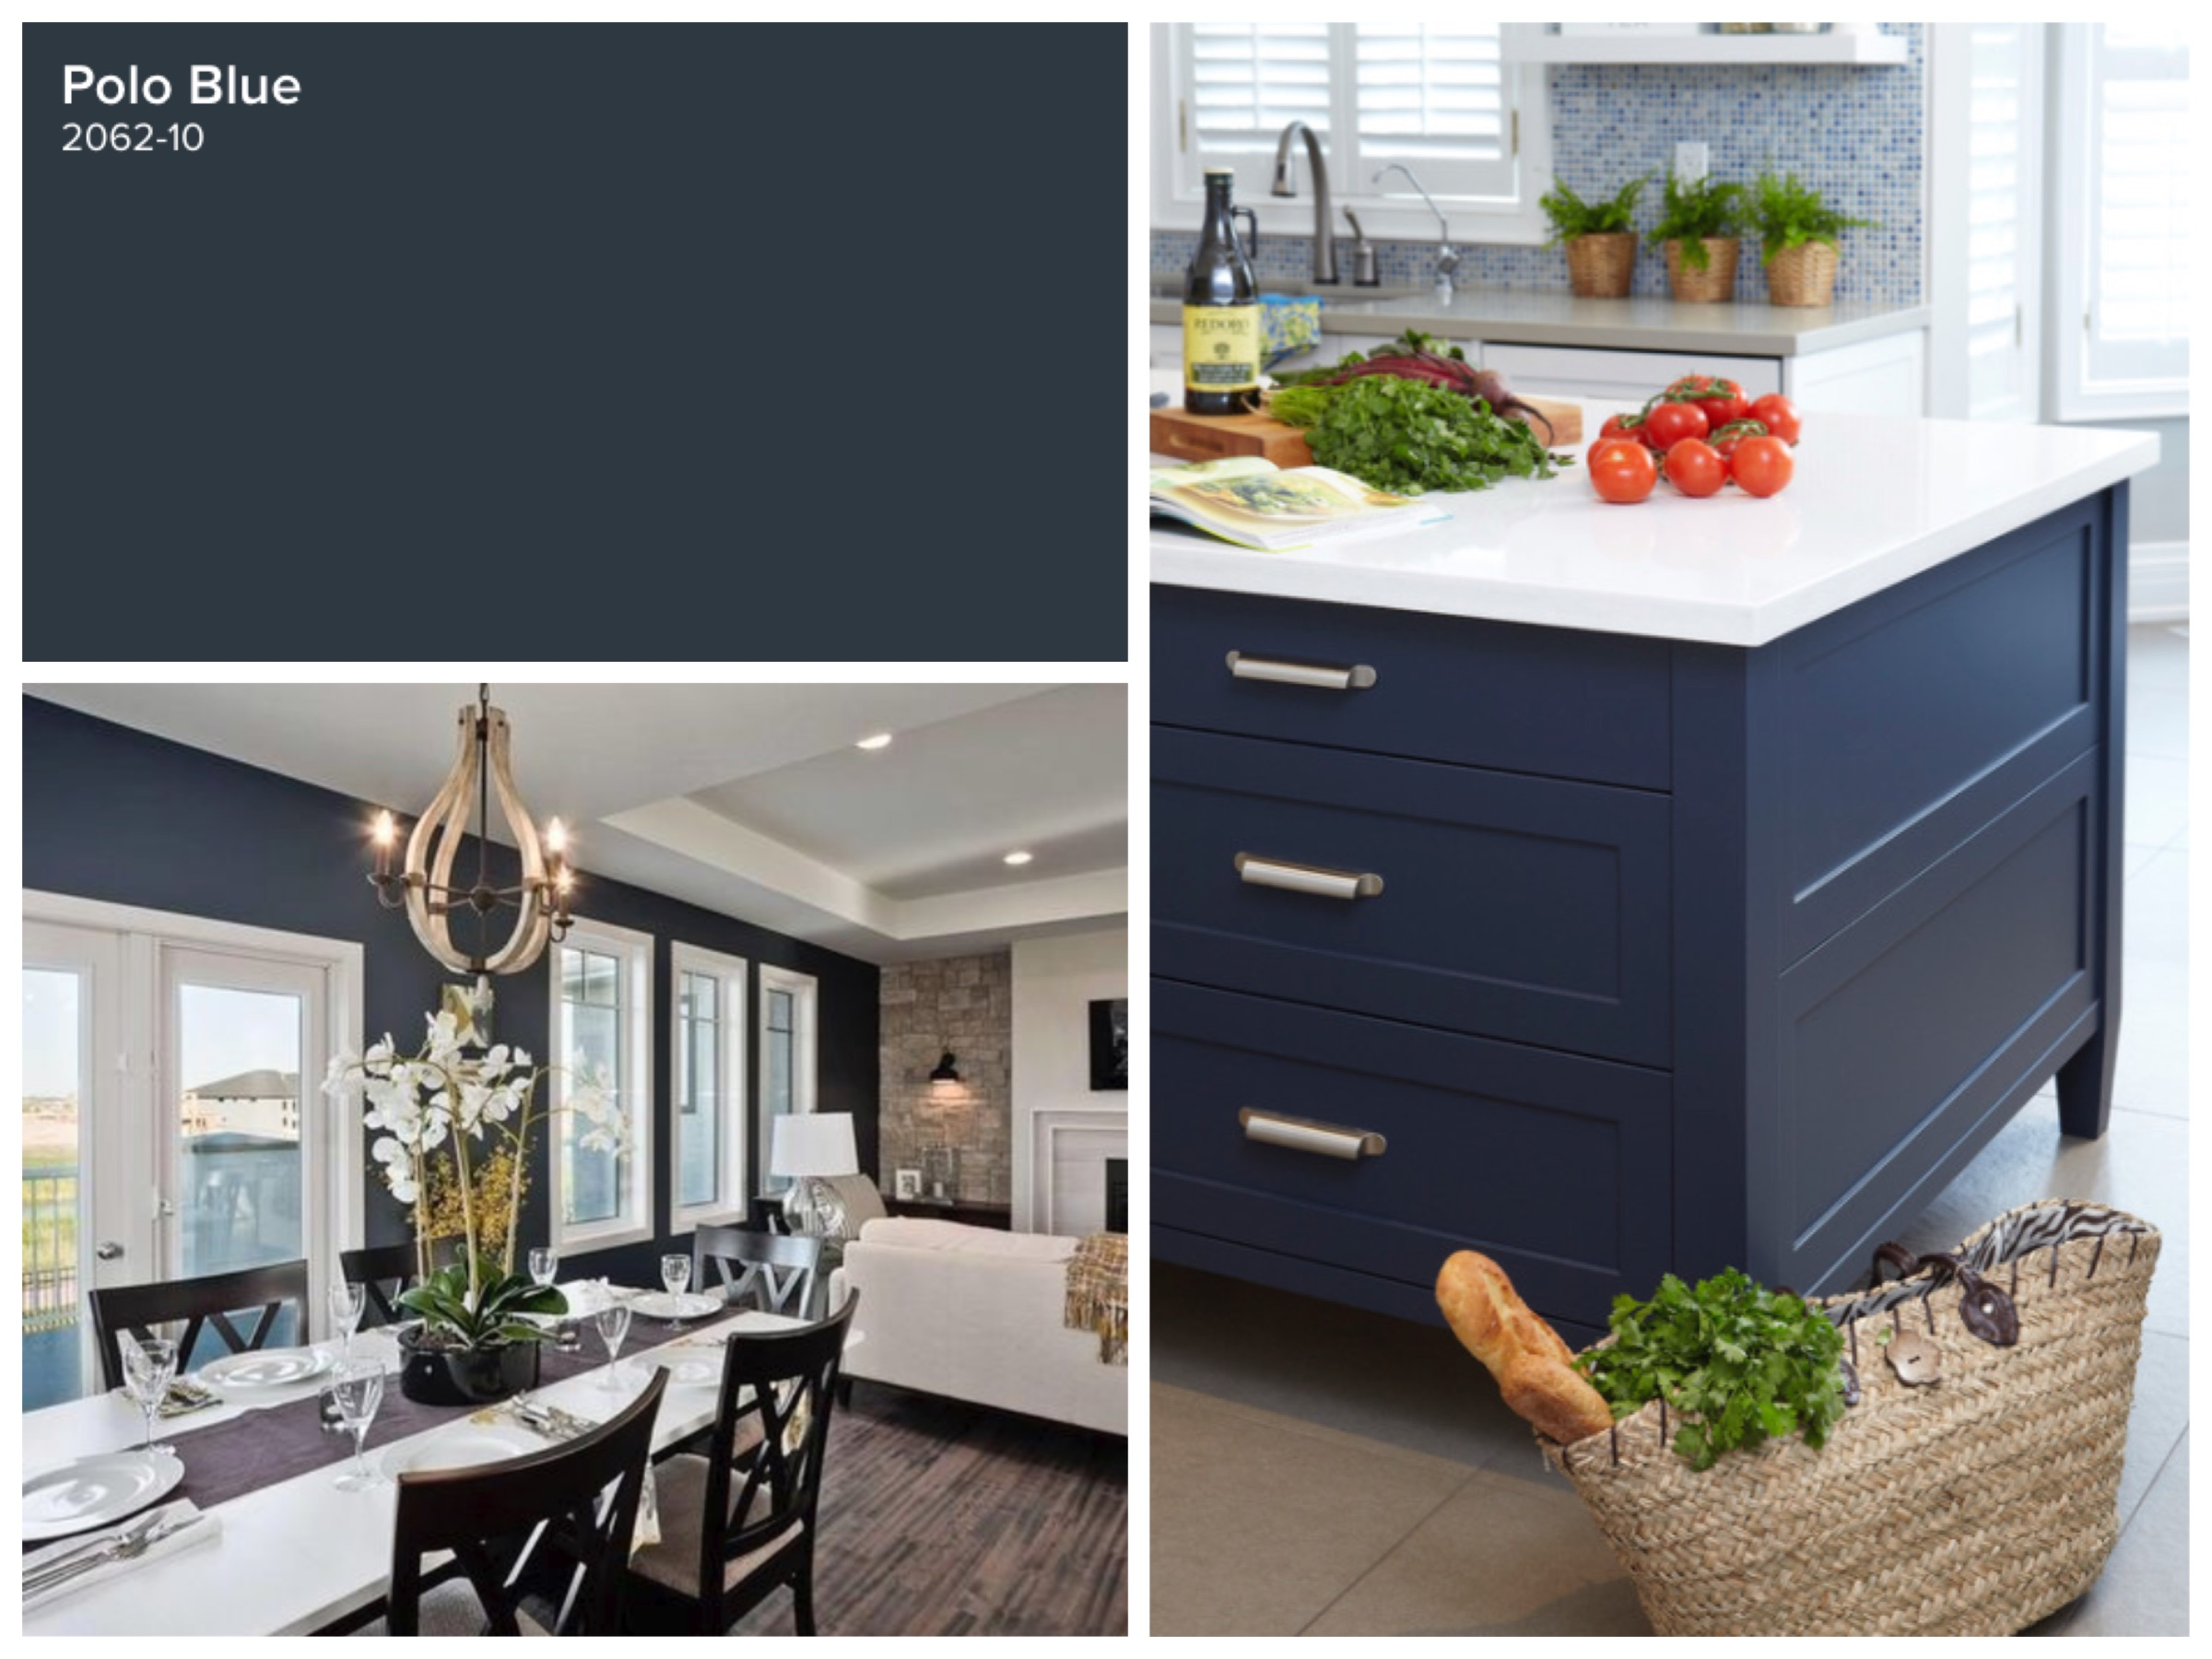 Polo Blue Benjamin Moore New Images